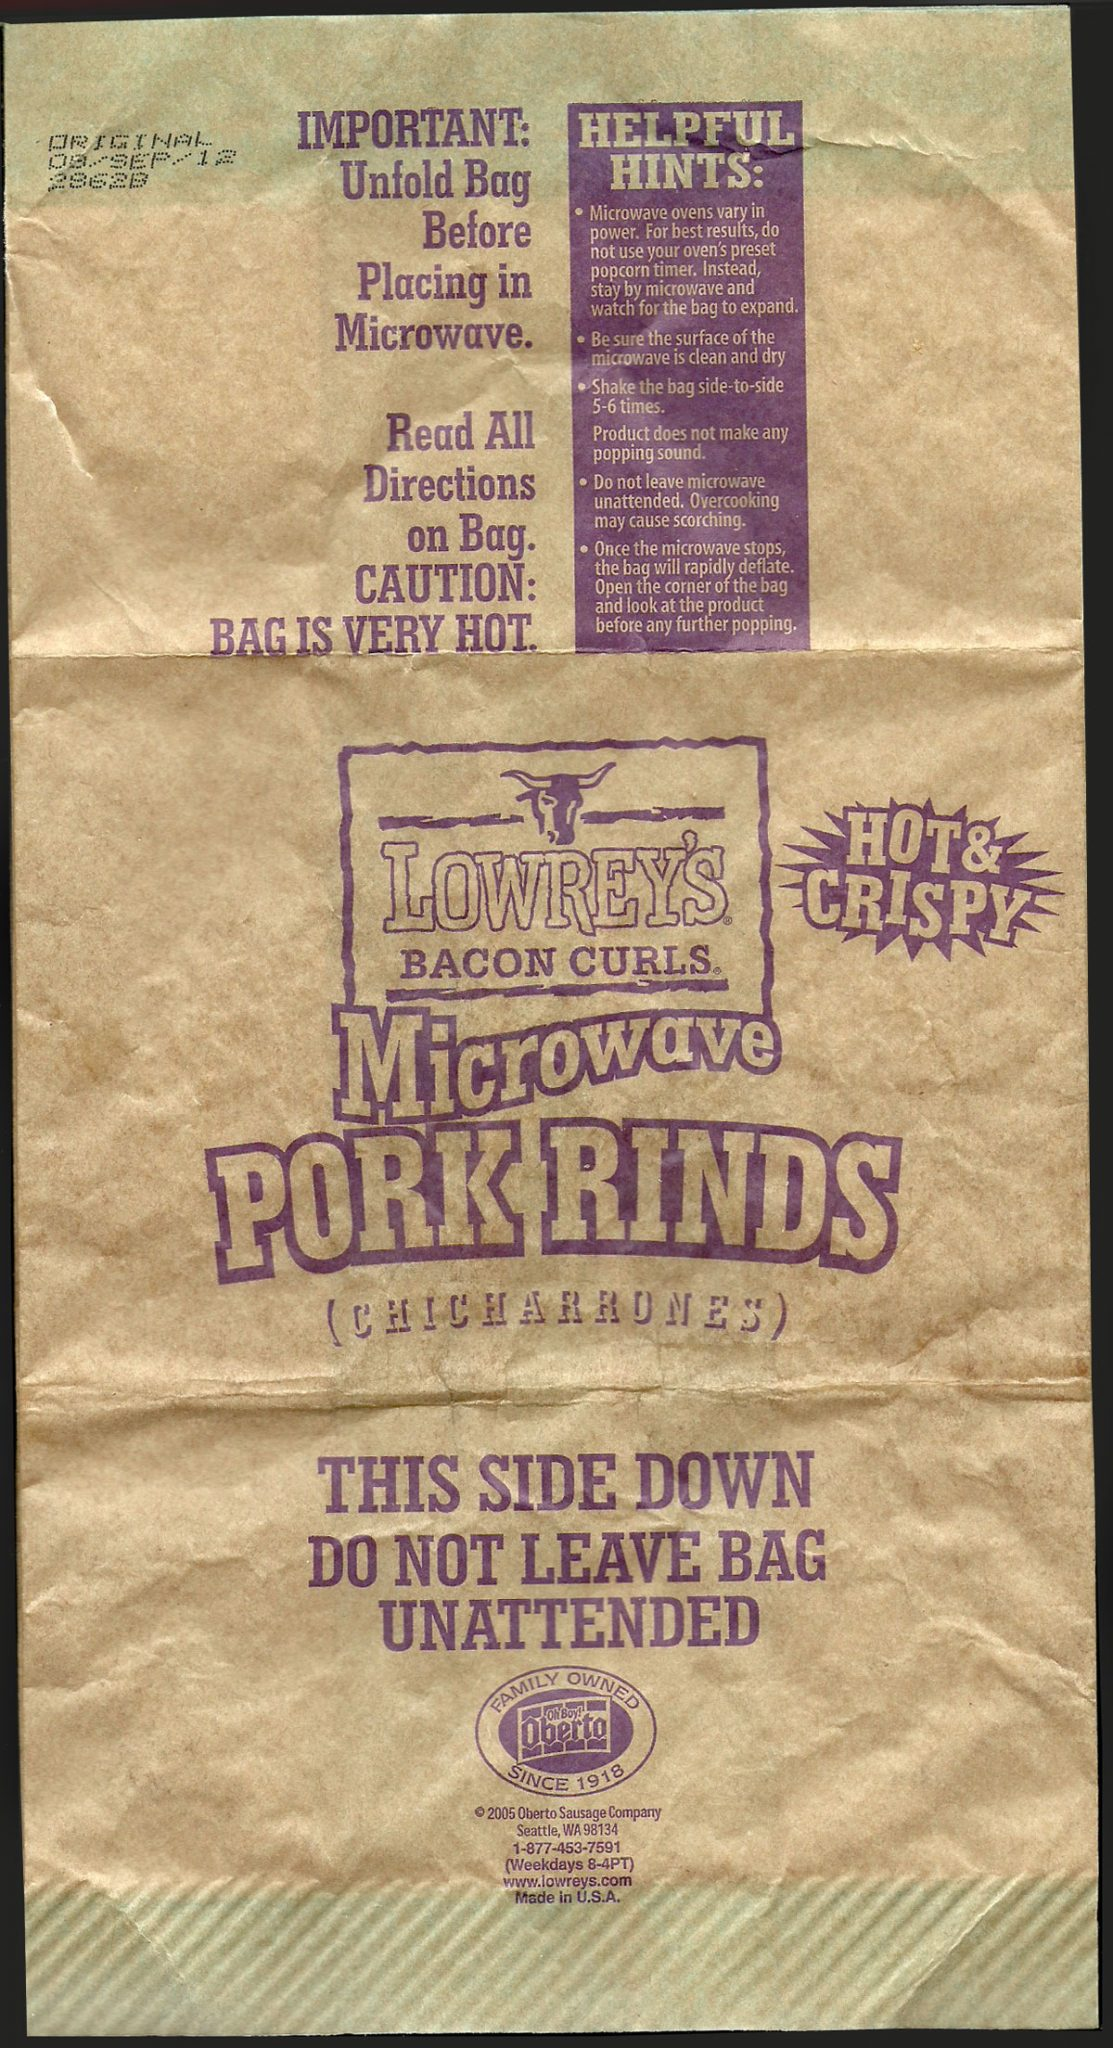 Lowreys Bacon Curls Microwave Pork Rinds Review2 - Lowrey's Bacon Curls, Microwave Pork Rinds Review